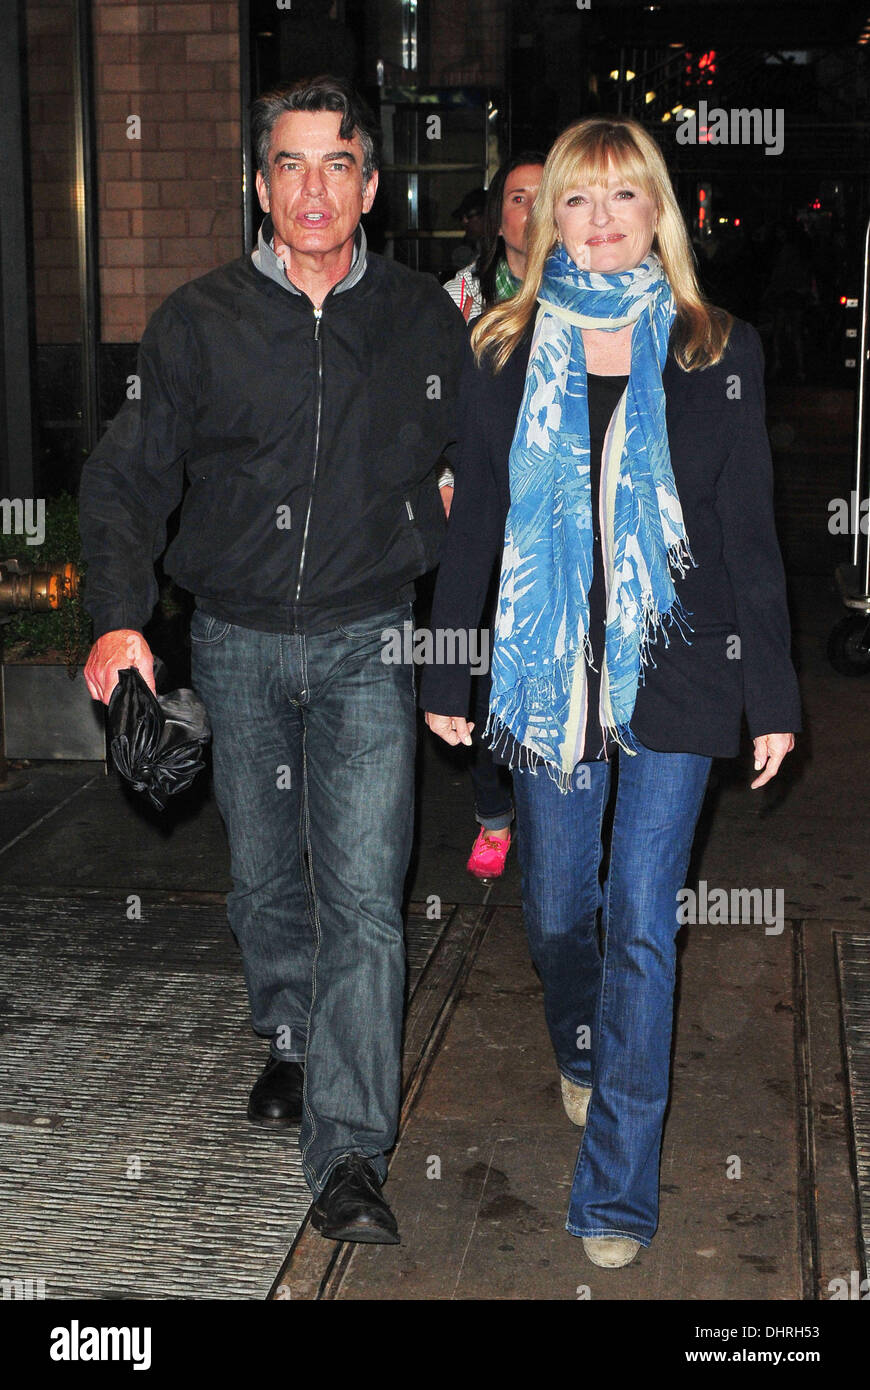 peter gallagher and wife paula harwood outside their